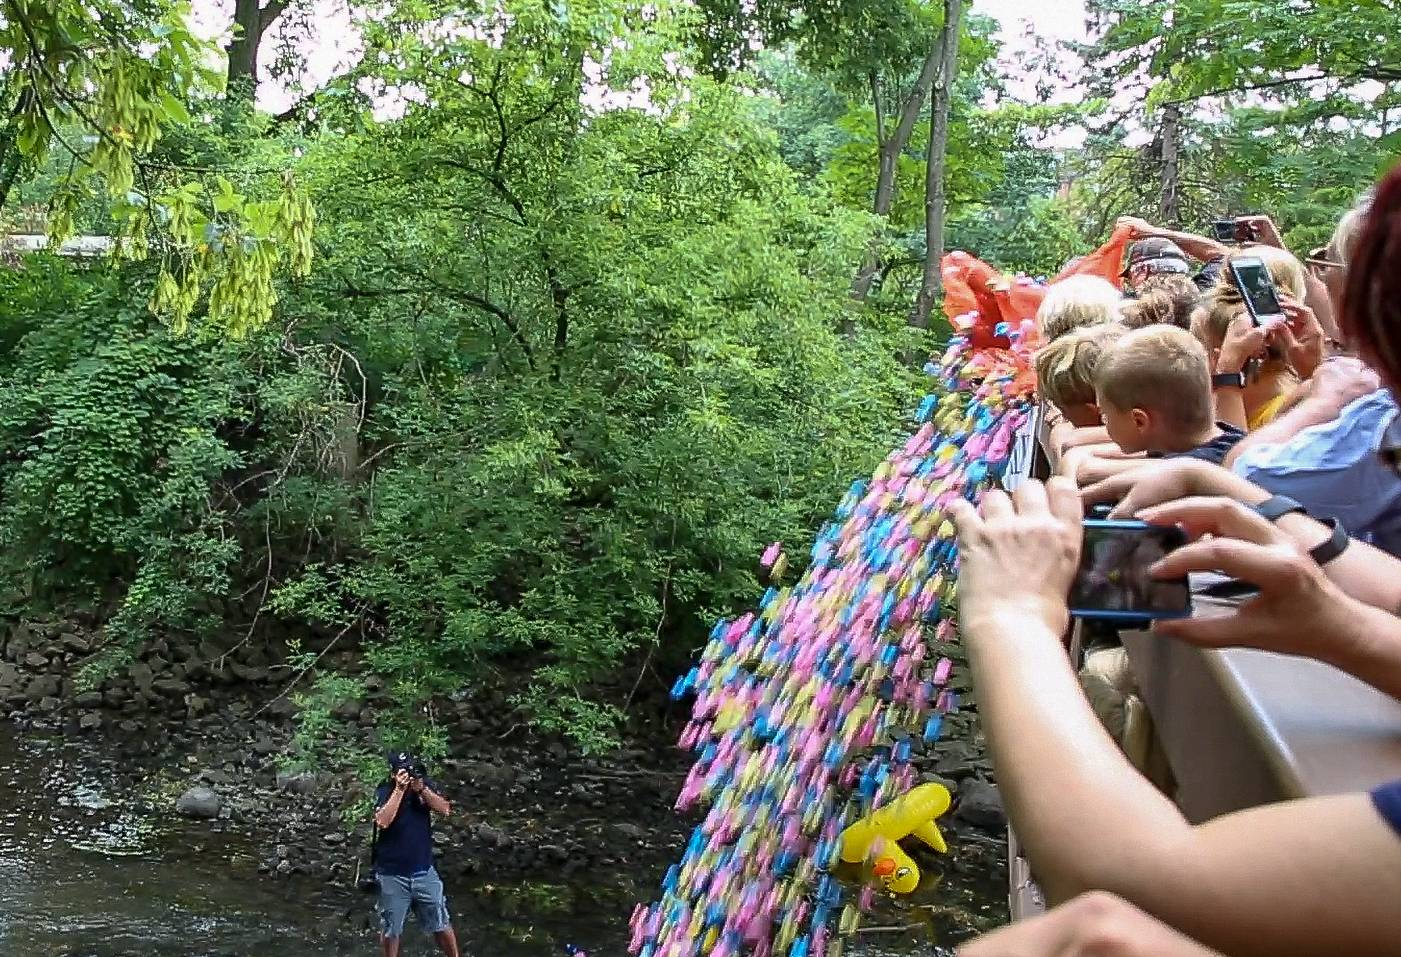 The third annual Riverwalk Duck Race begins Wednesday morning in Naperville as 2,000 colorful quackers are dumped into the west branch of the DuPage River all at once.